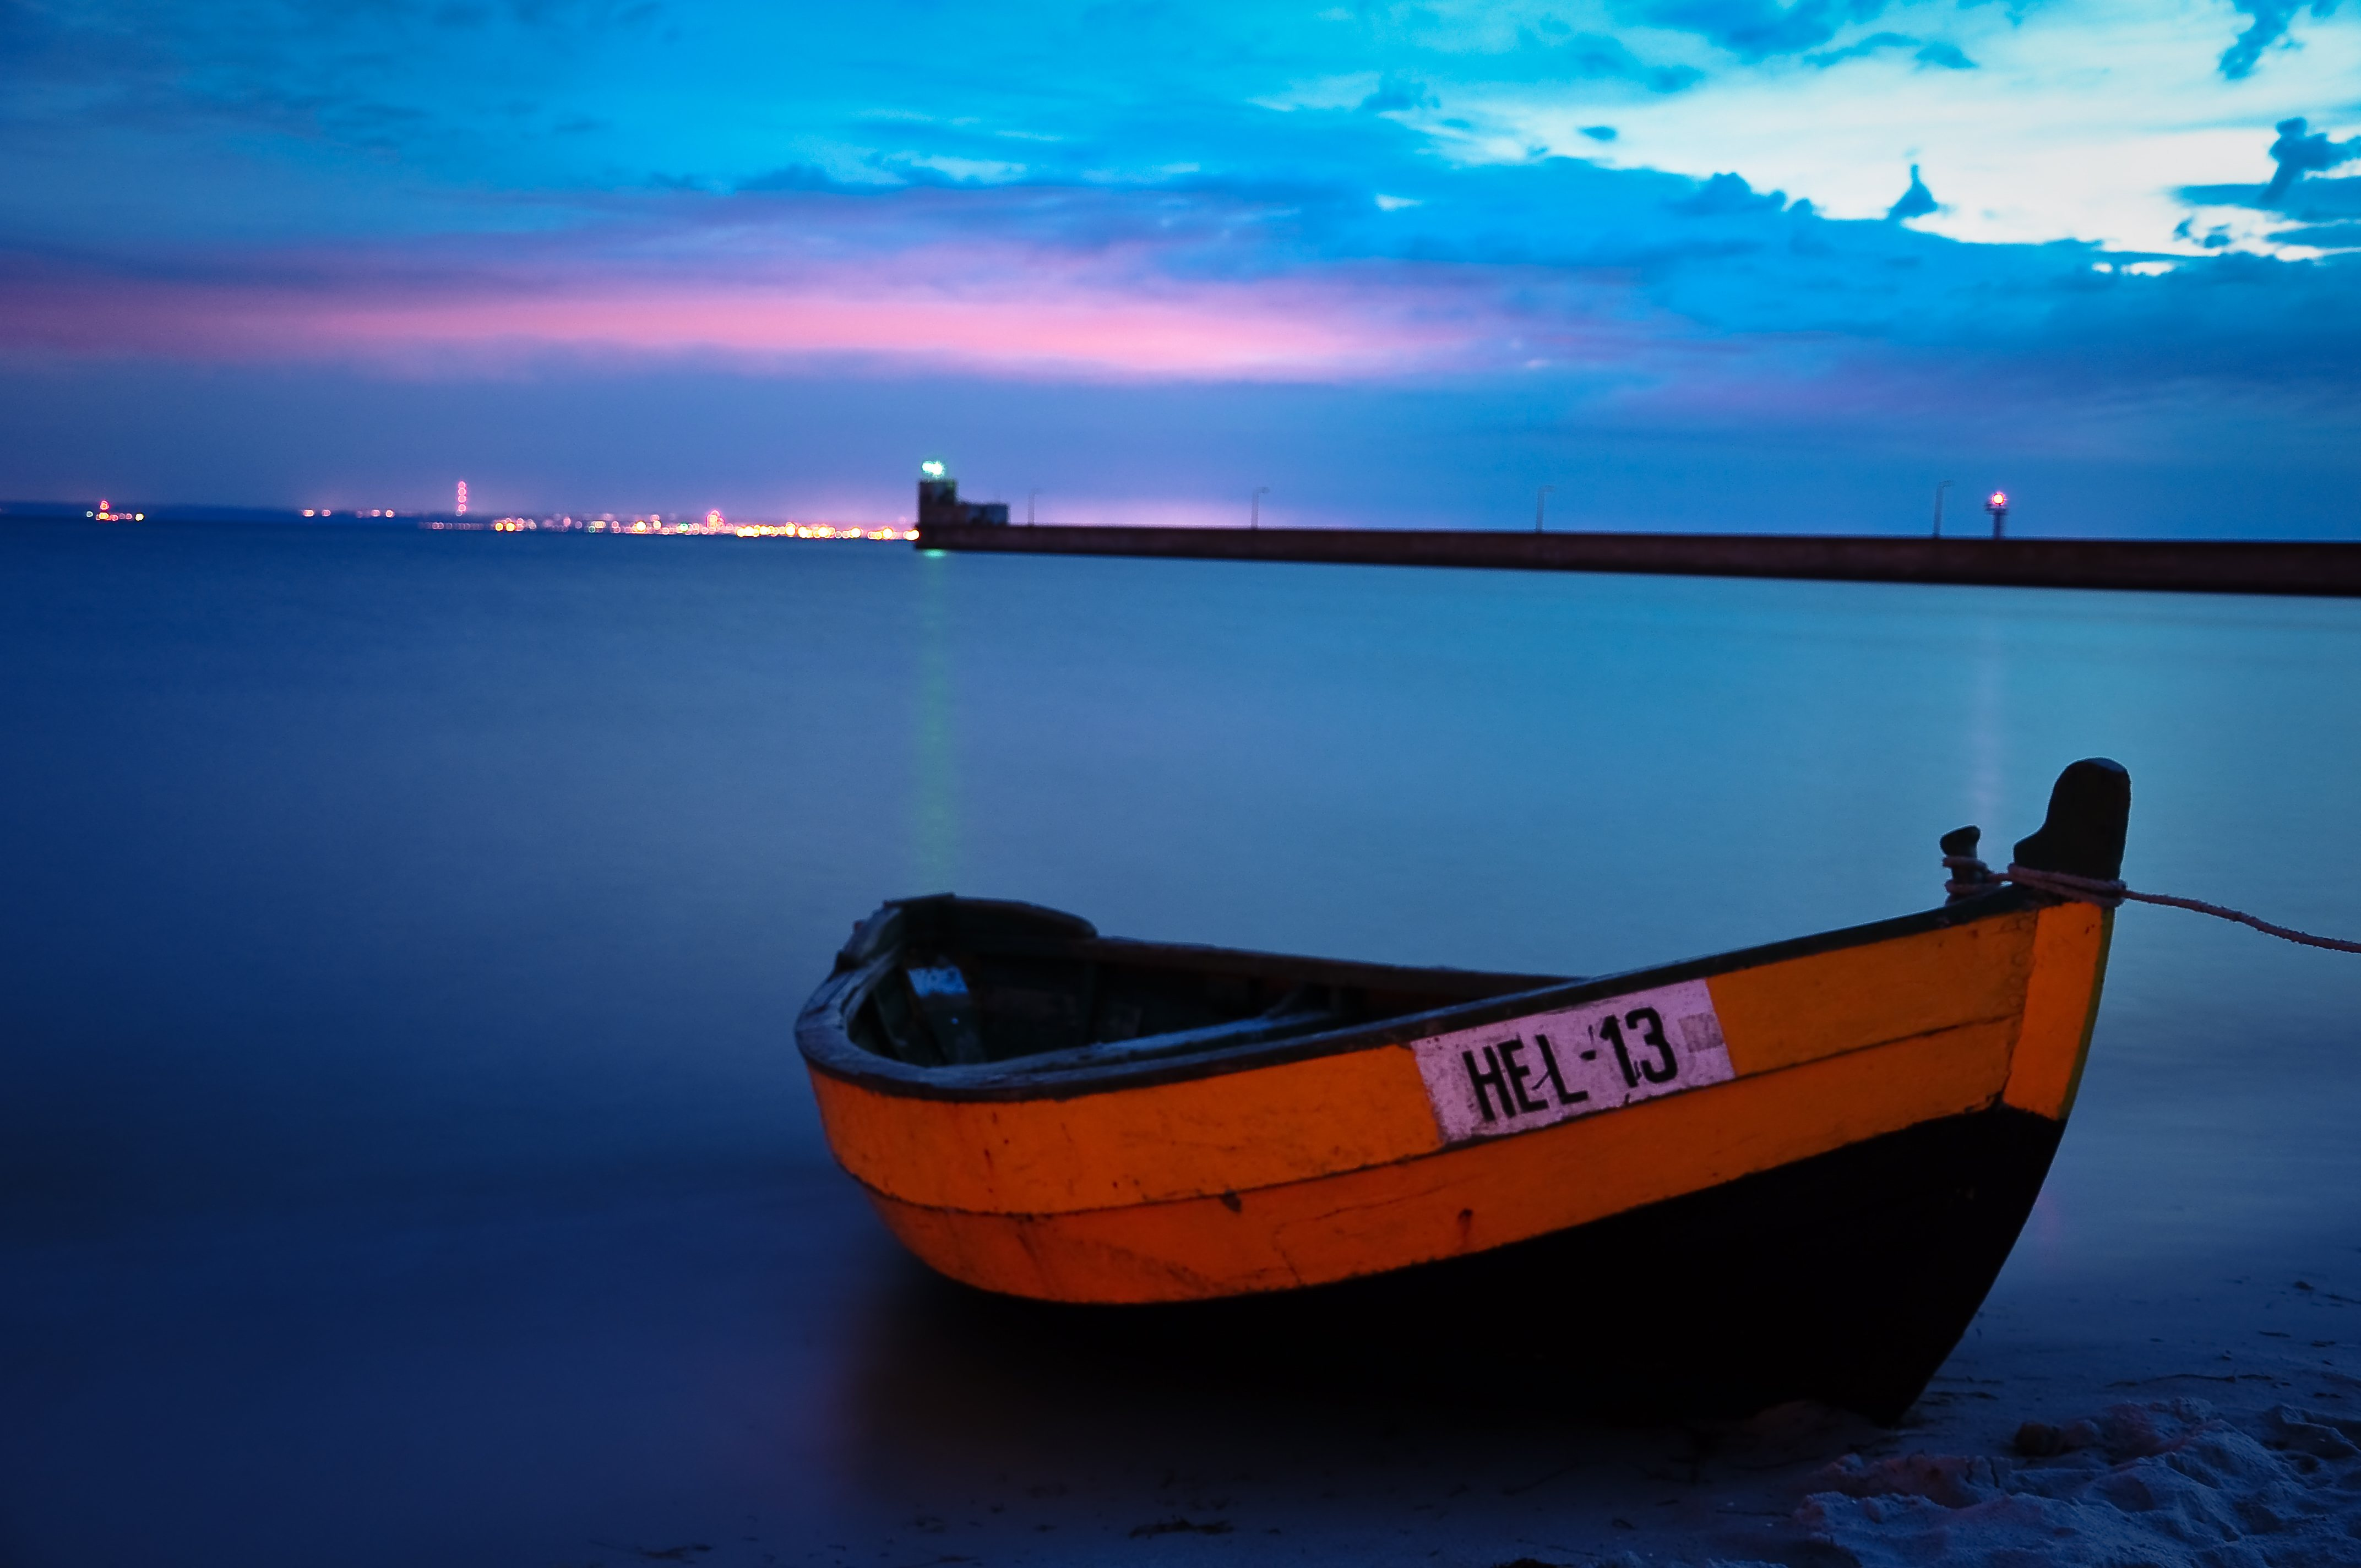 Fishing Boat in Hel by night, Poland, Baltic, Outdoor, Vehicle, Travel, HQ Photo